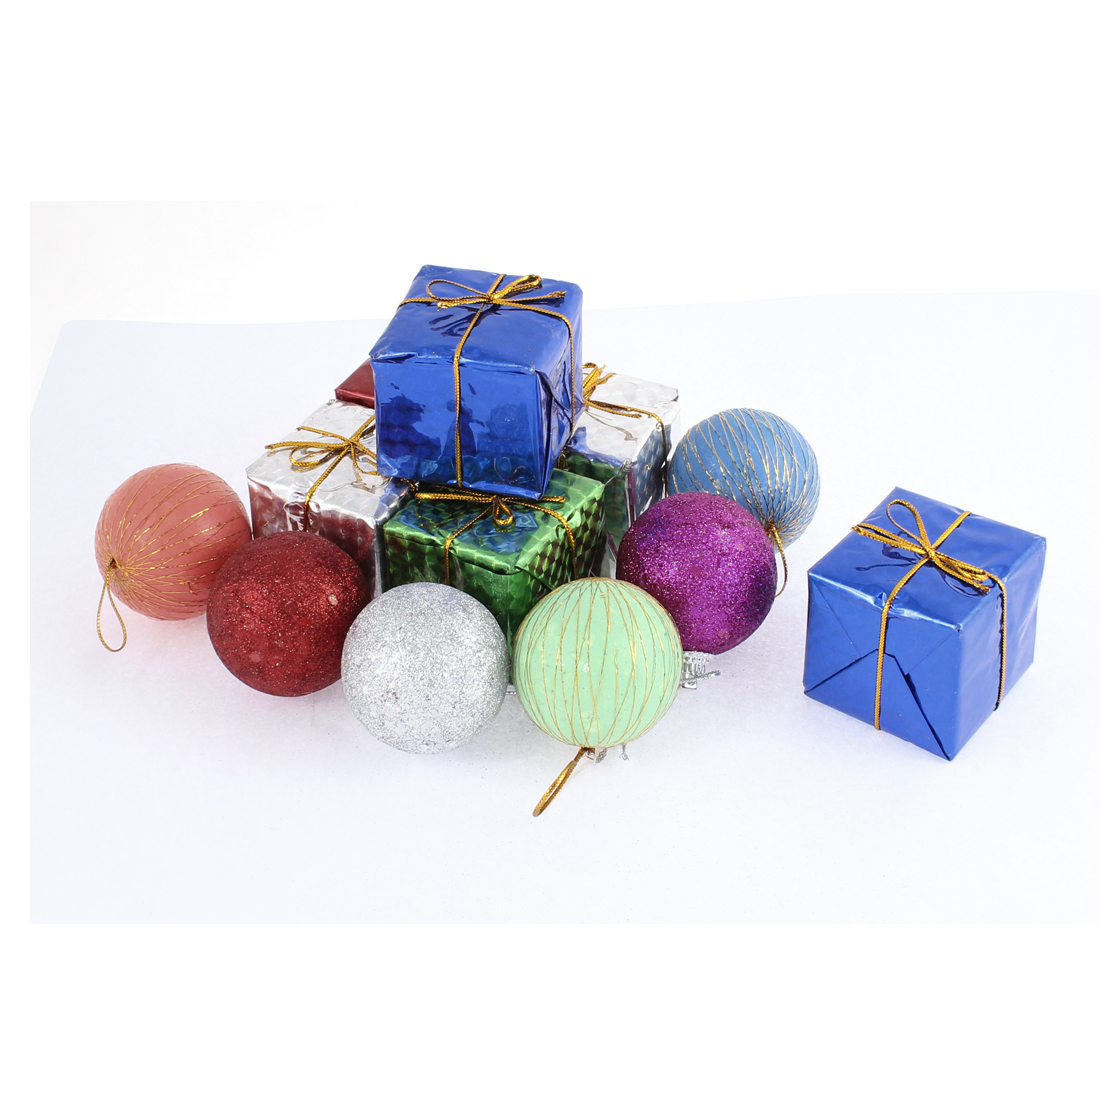 12 in 1 Multicolored Sponge Balls Baubles Cubic Gift Box Christmas Tree Hanger Hanging Decoration